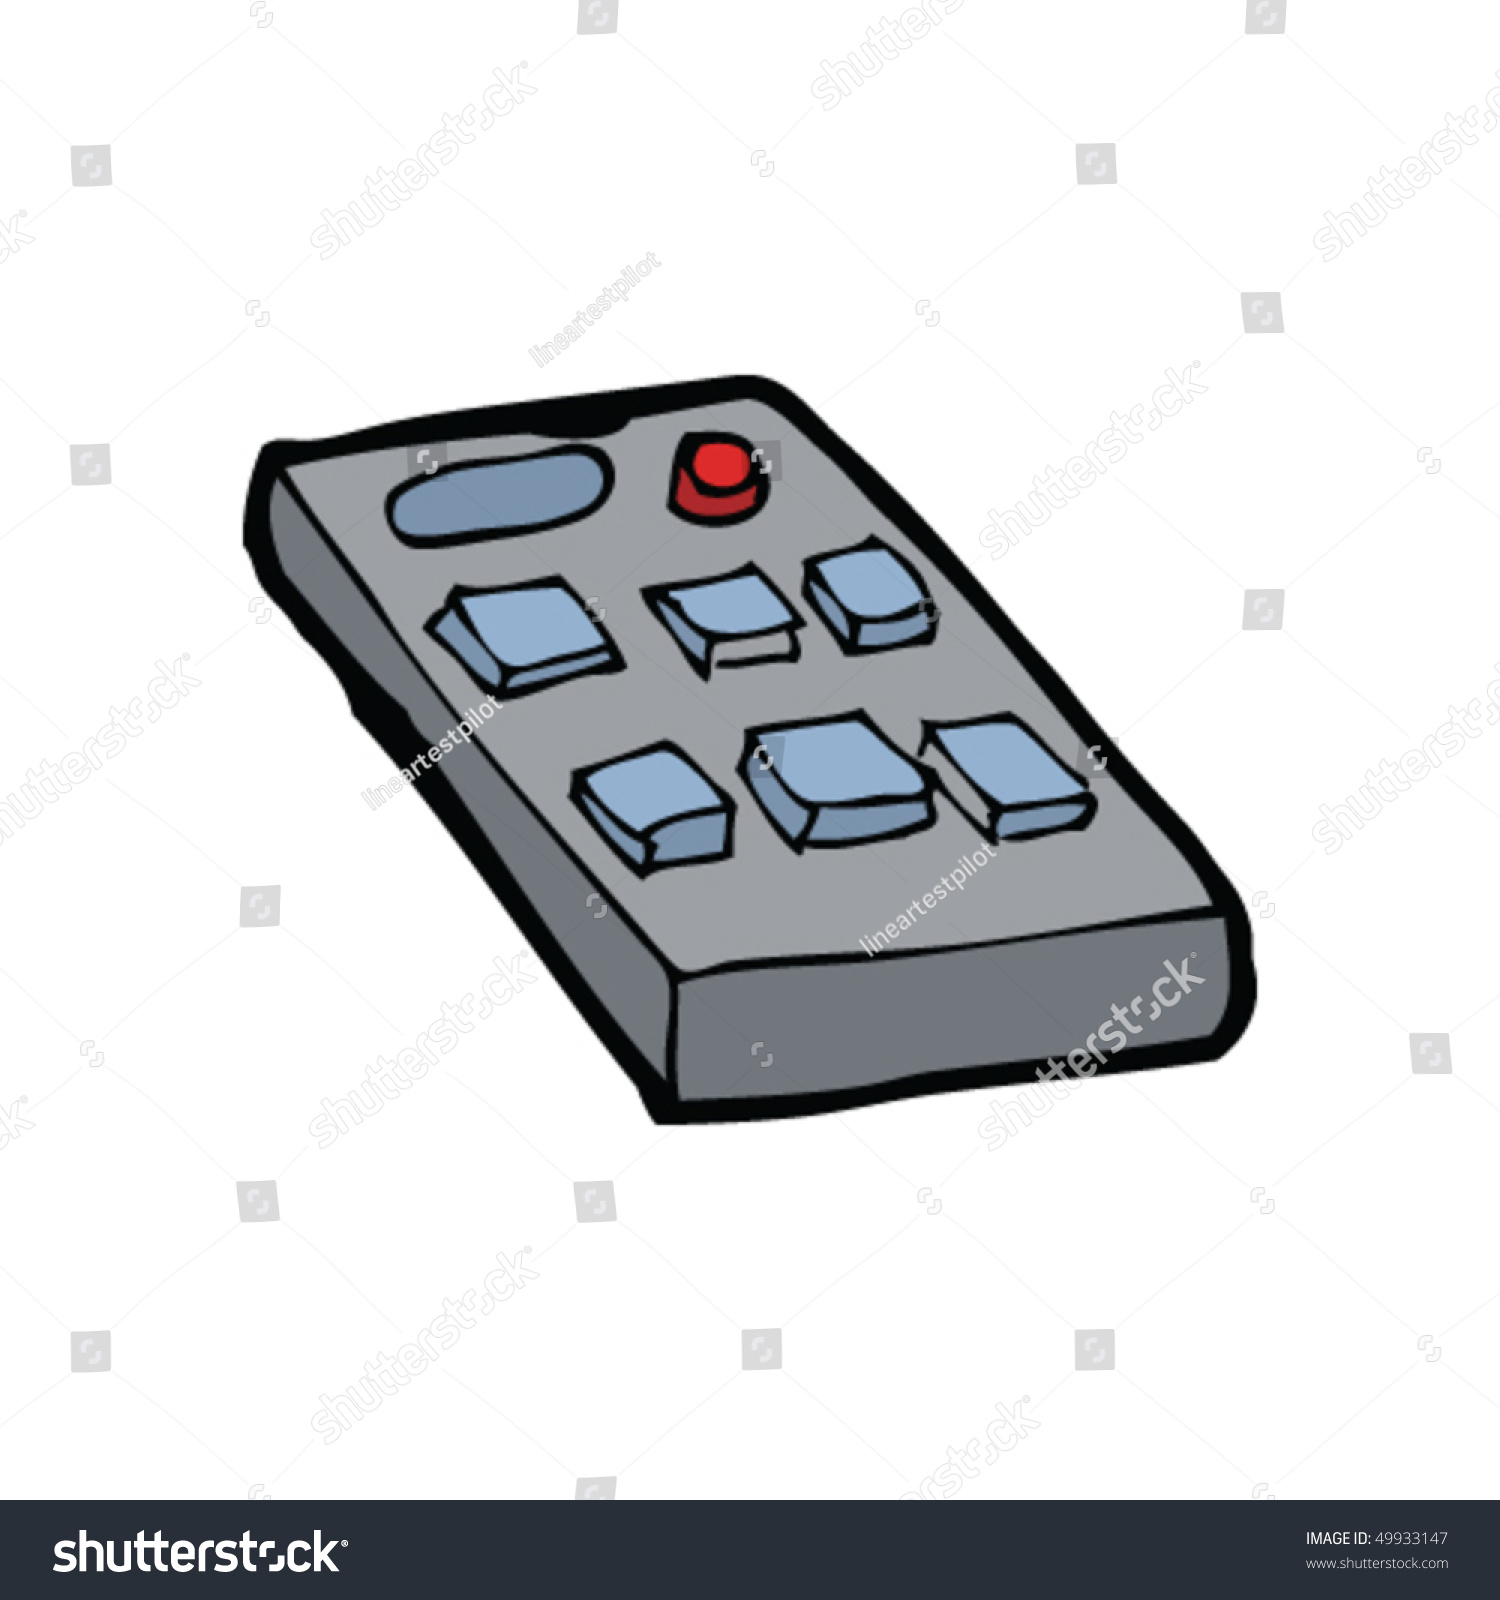 remote control drawing. quirky drawing of a remote control i